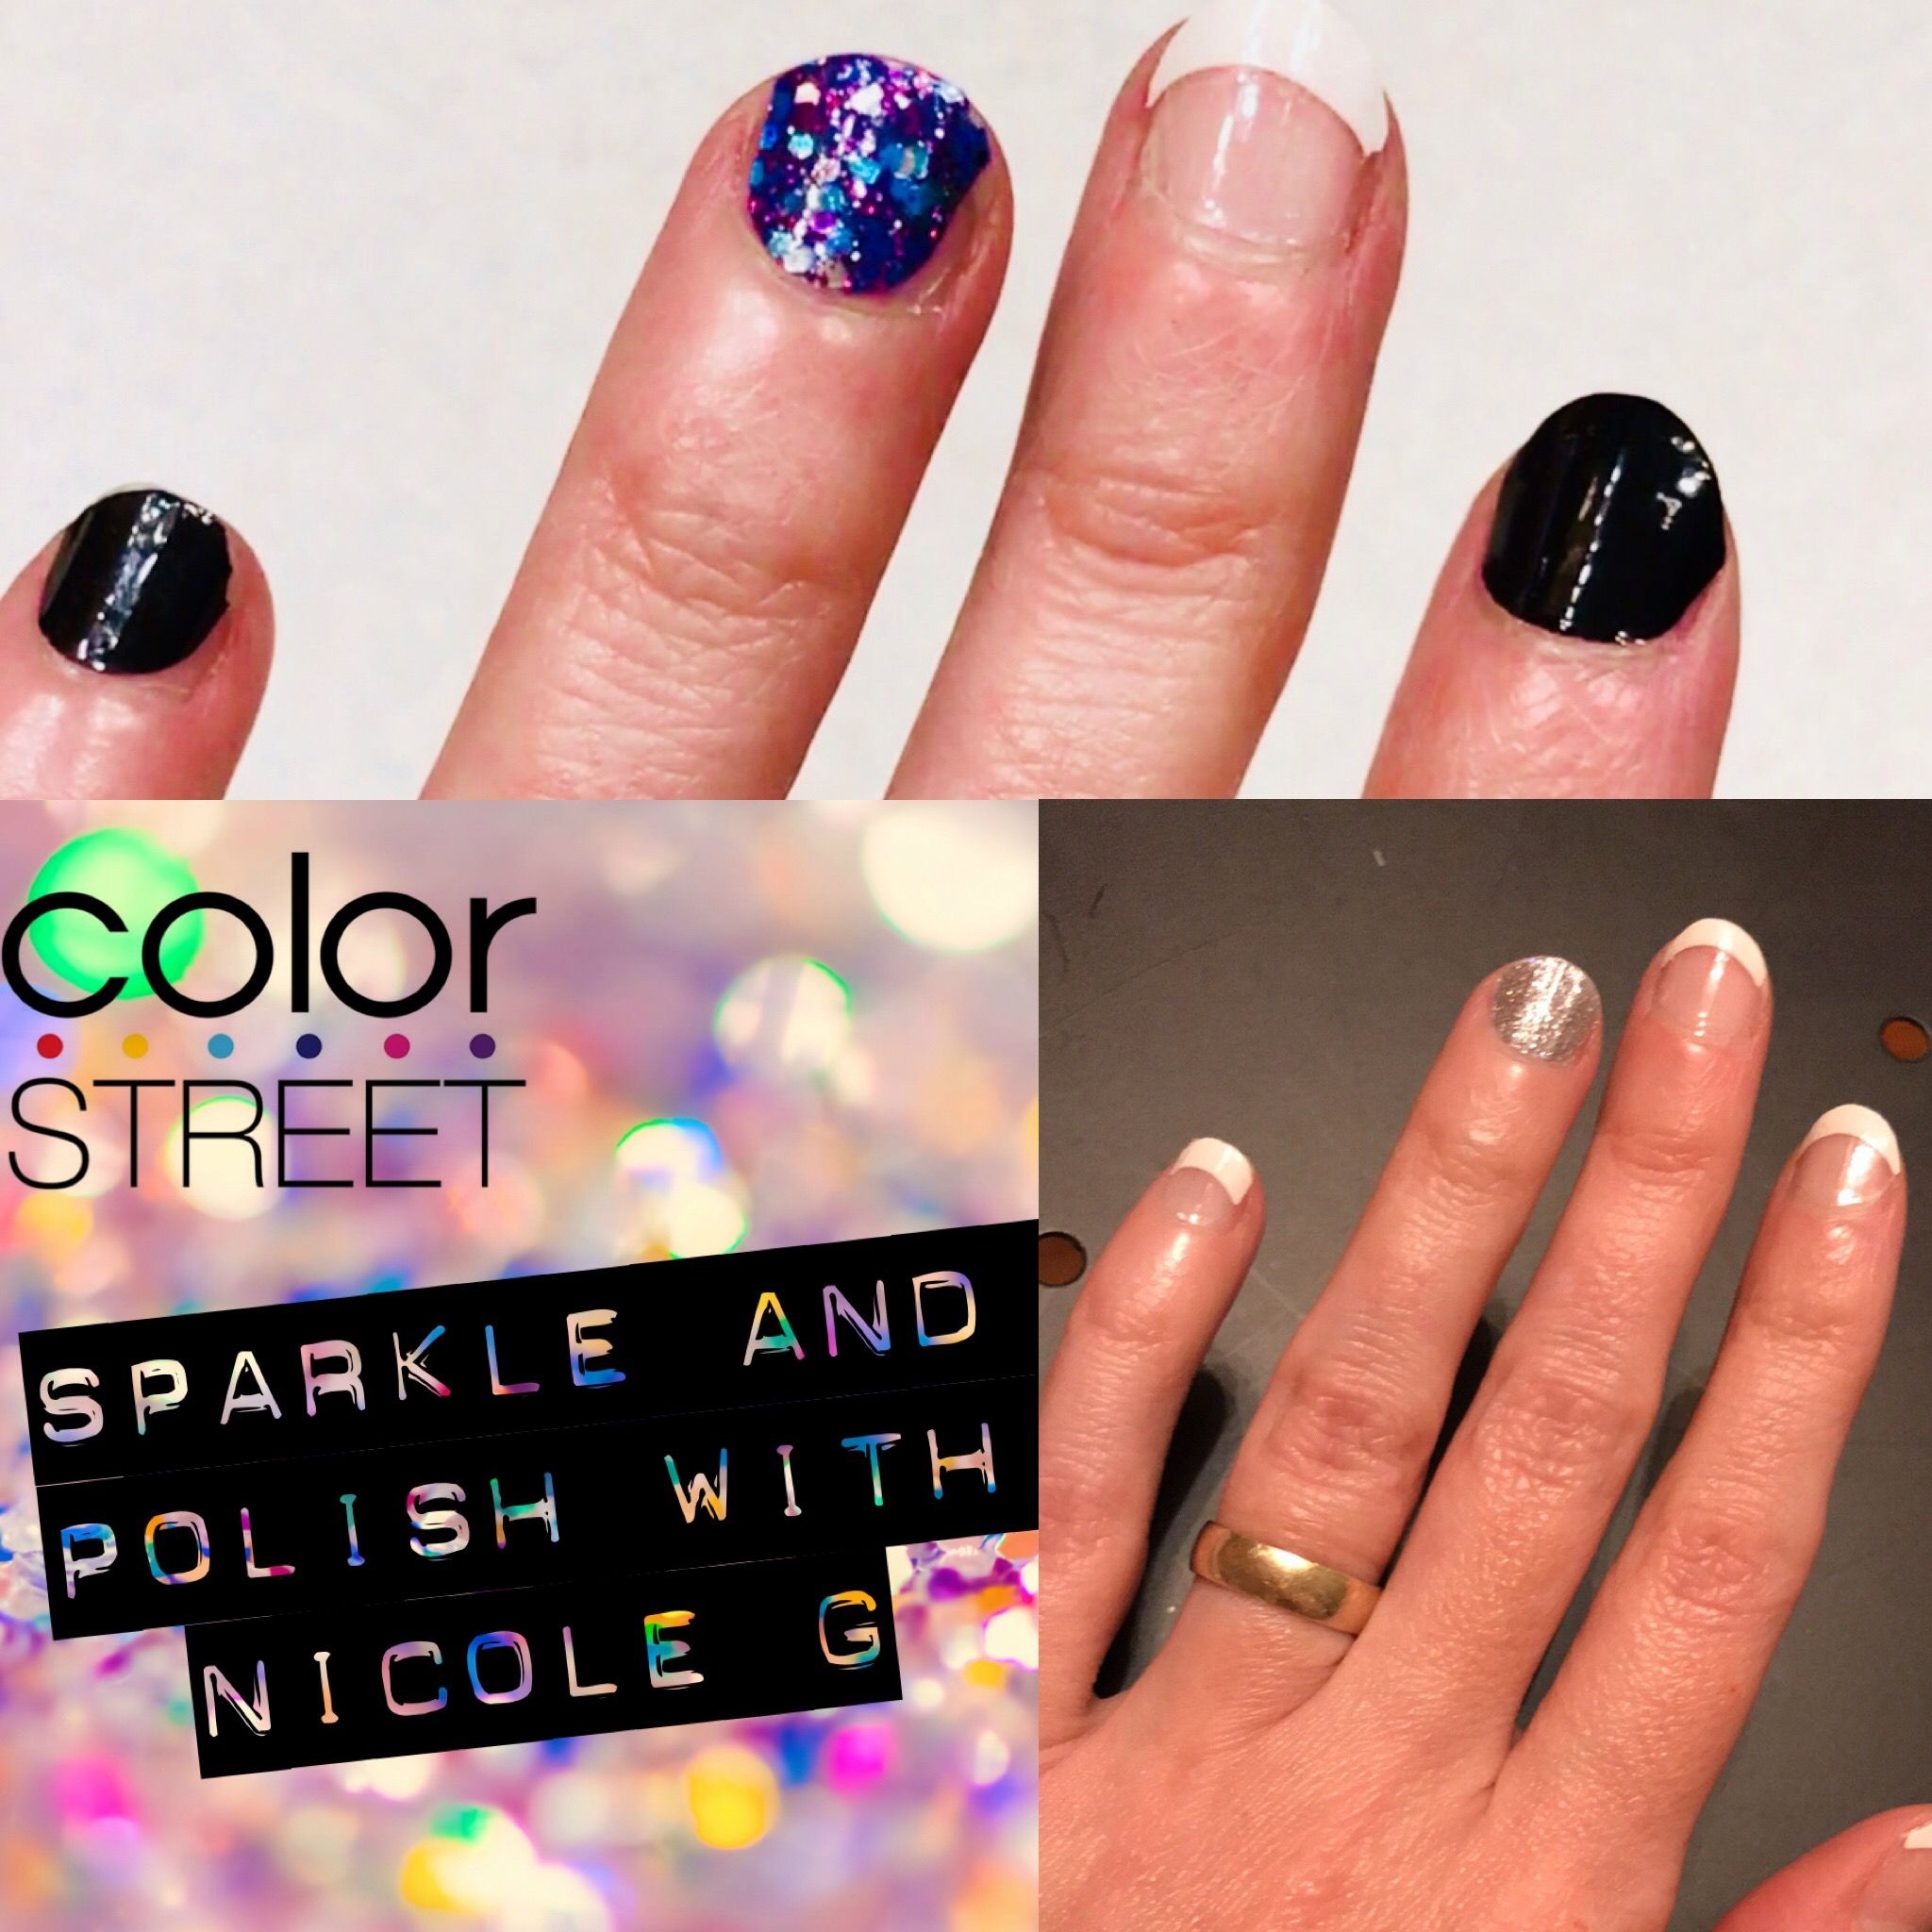 Pin by Nicole G on Color Street- Sparkle And Polish With Nicole G ...